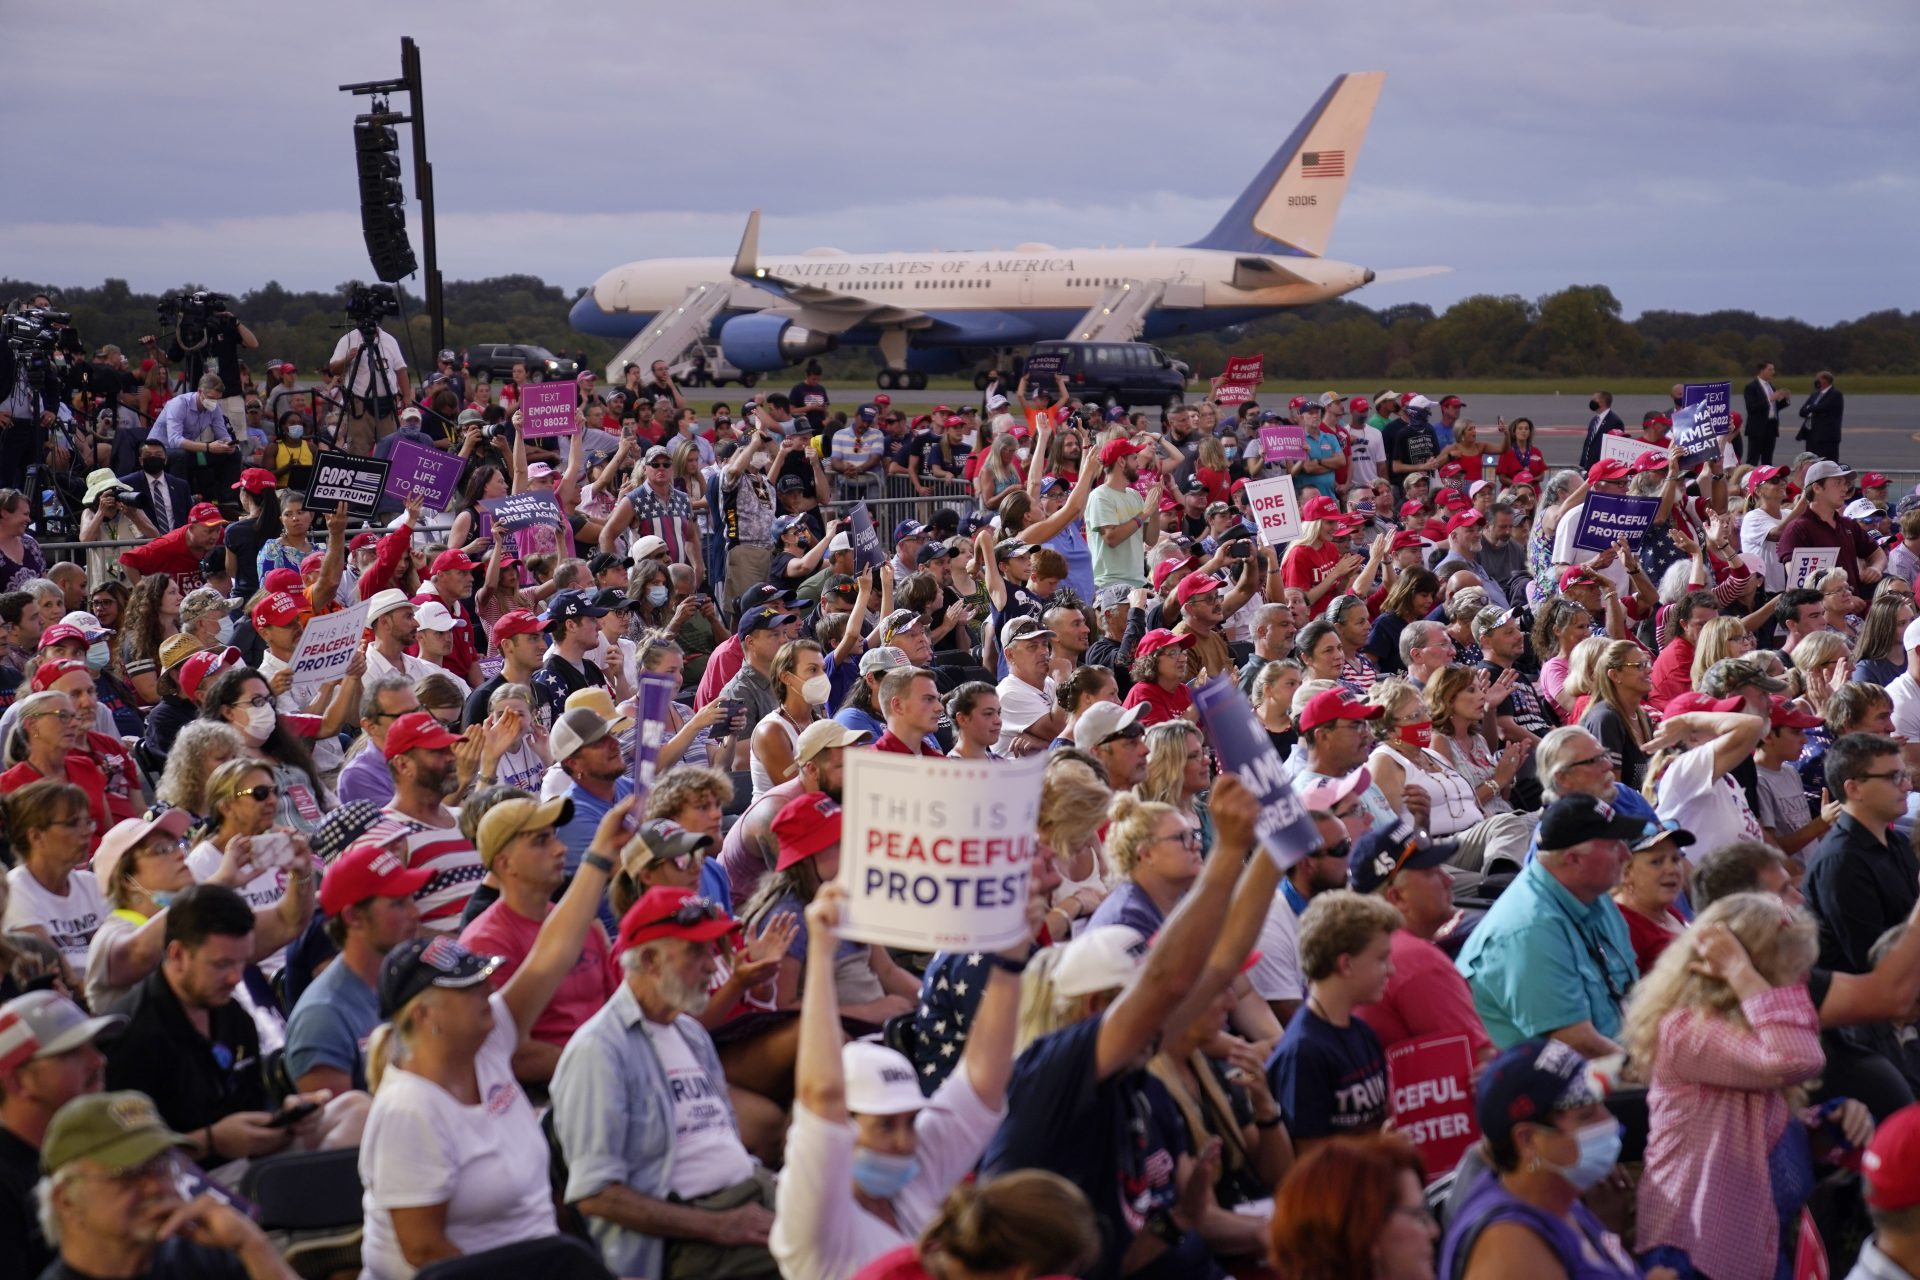 People cheer as President Donald Trump speaks during a campaign rally at Smith Reynolds Airport, Tuesday, Sept. 8, 2020, in Winston-Salem, N.C.